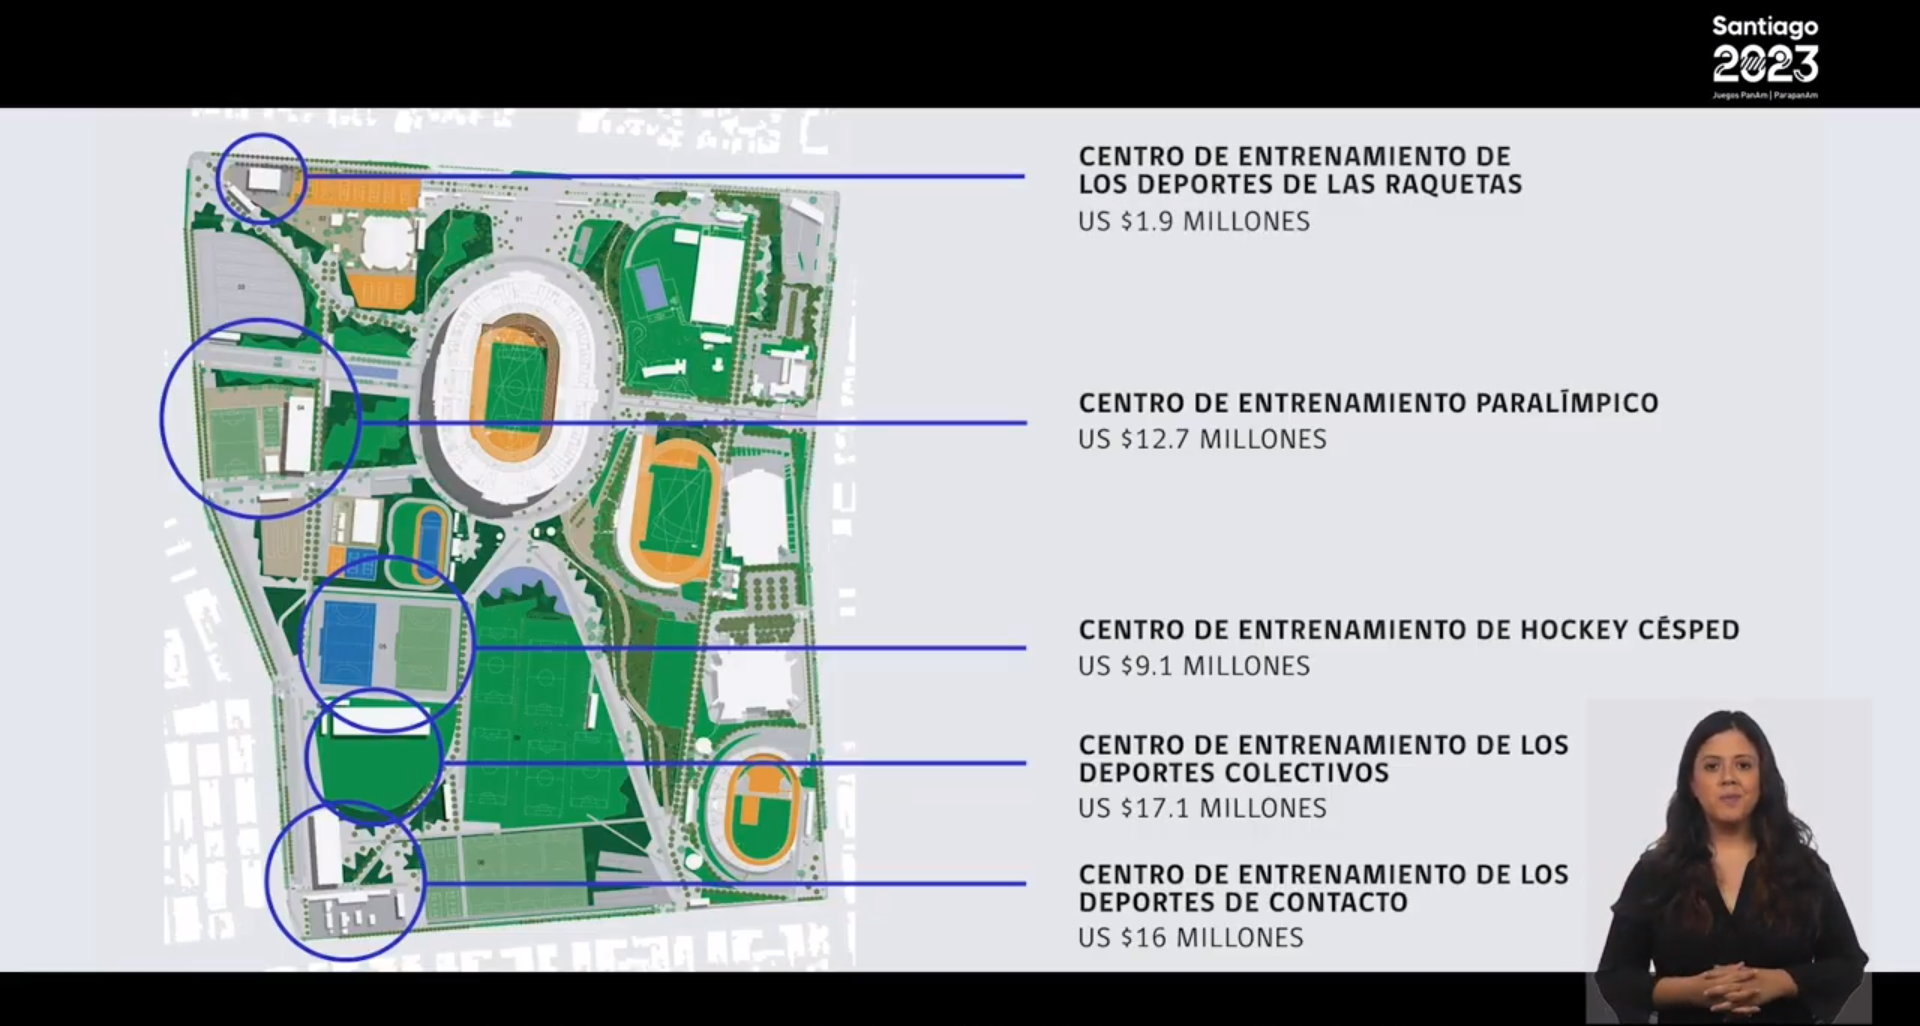 Santiago 2023 outlined new venues and upgrades which will be completed for the Games ©Santiago 2023